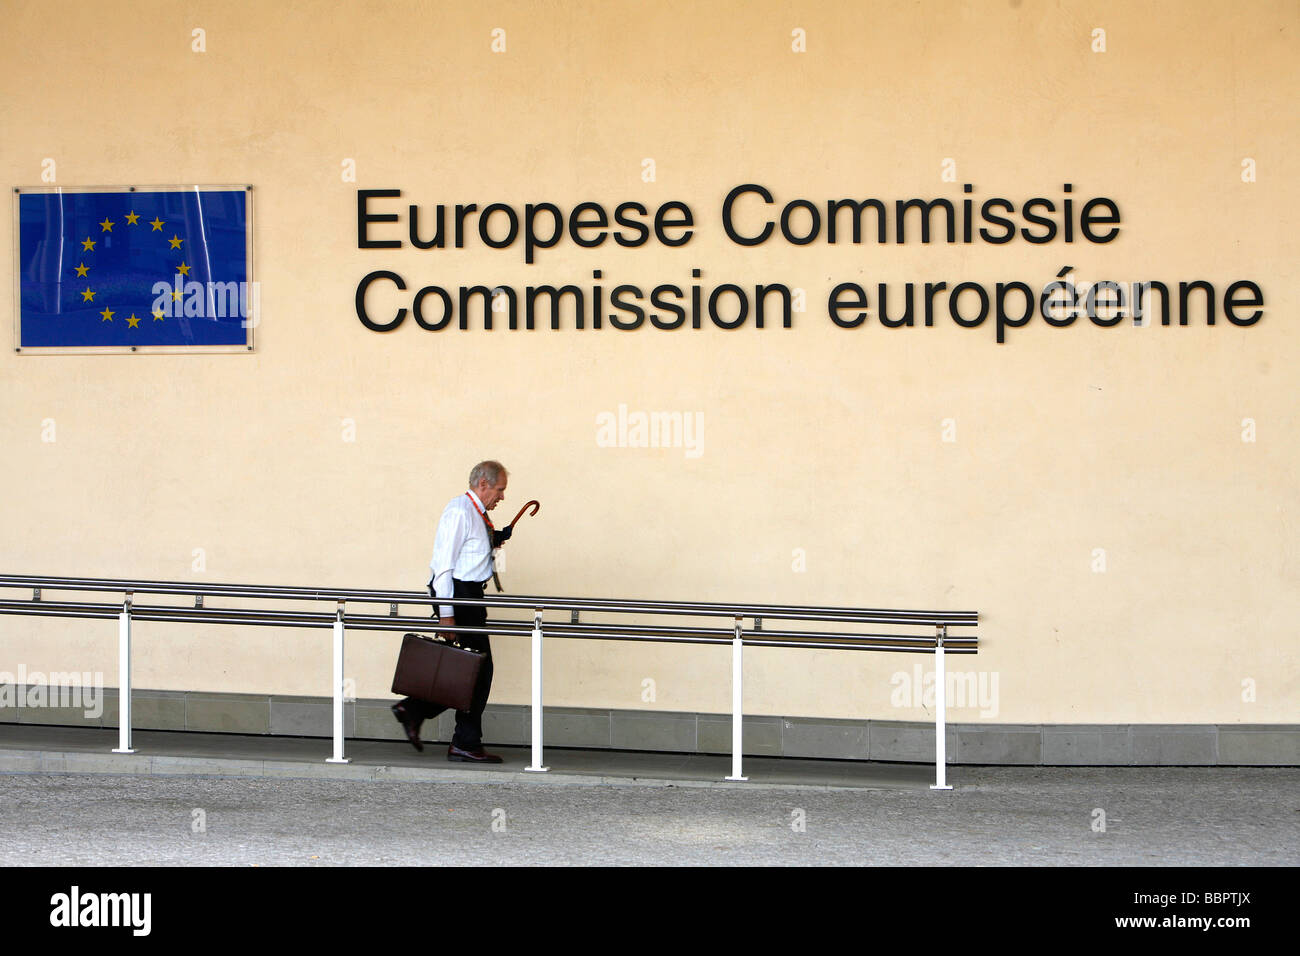 ENTRANCE TO THE BERLAYMONT BUILDING OF THE EUROPEAN COMMISSION, BRUSSELS, BELGIUM - Stock Image